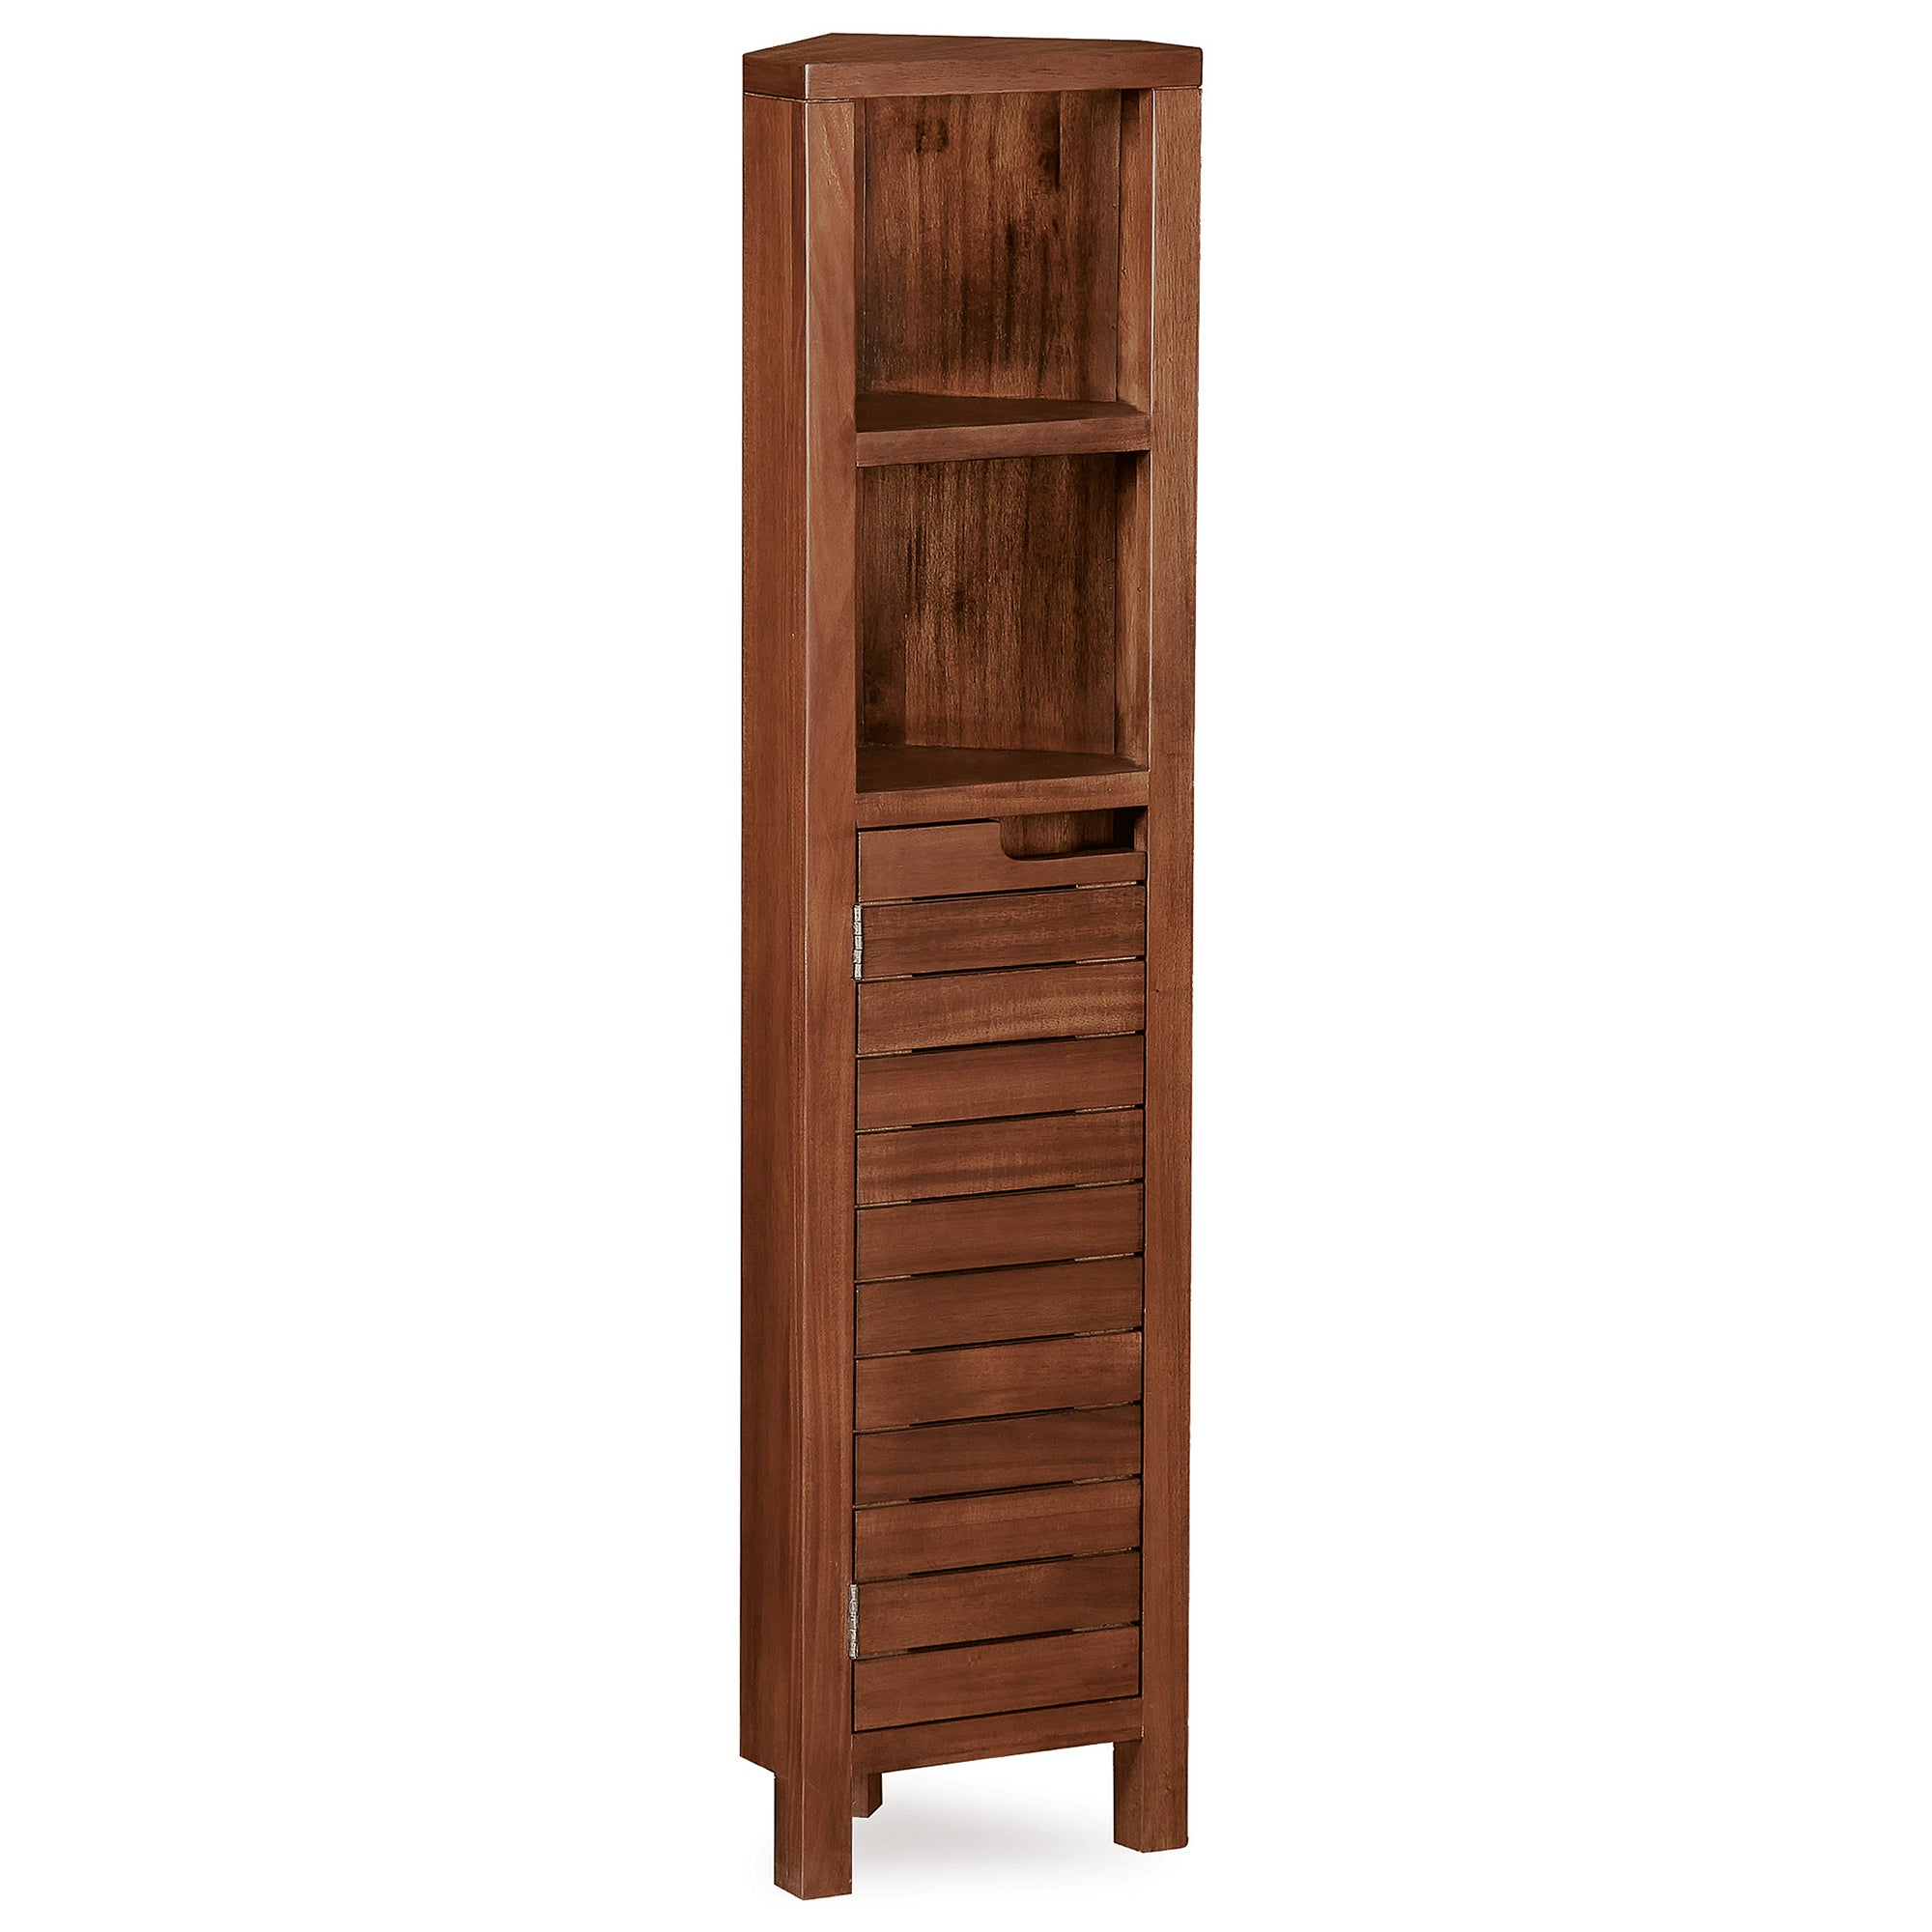 Marseille Acacia Slatted Corner Tall Unit